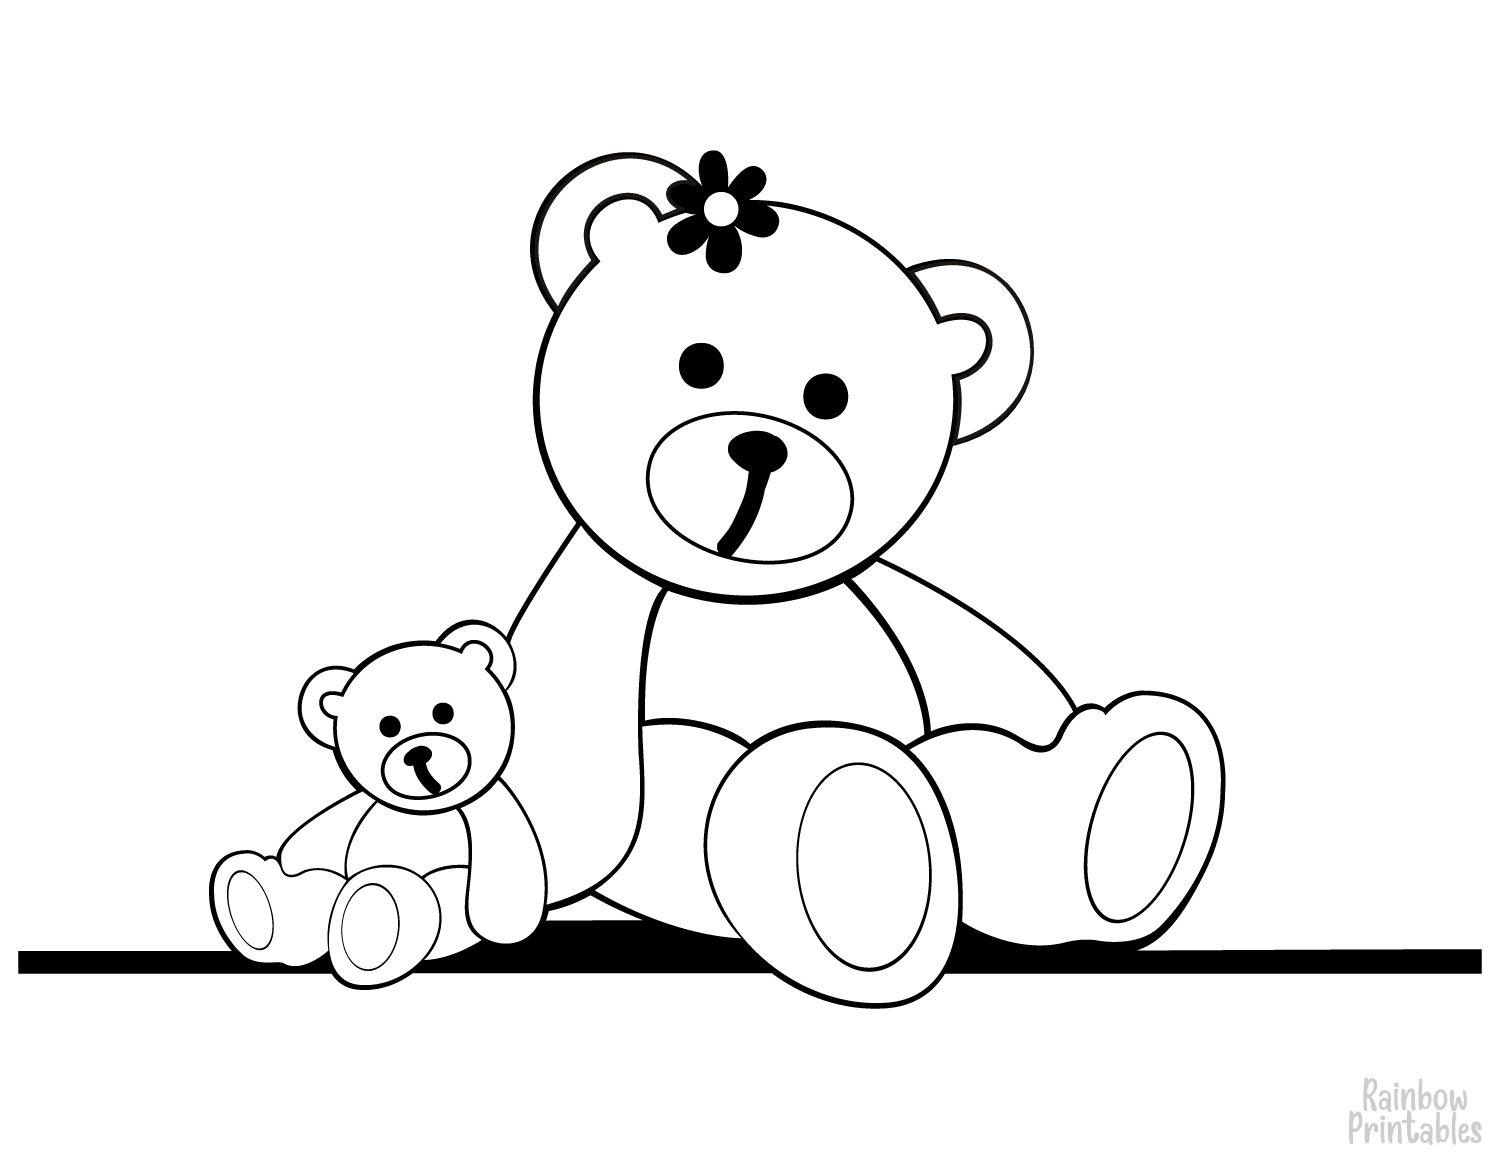 STUFFED TEDDY BEAR TOY Clipart Coloring Pages for Kids Adults Art Activities Line Art